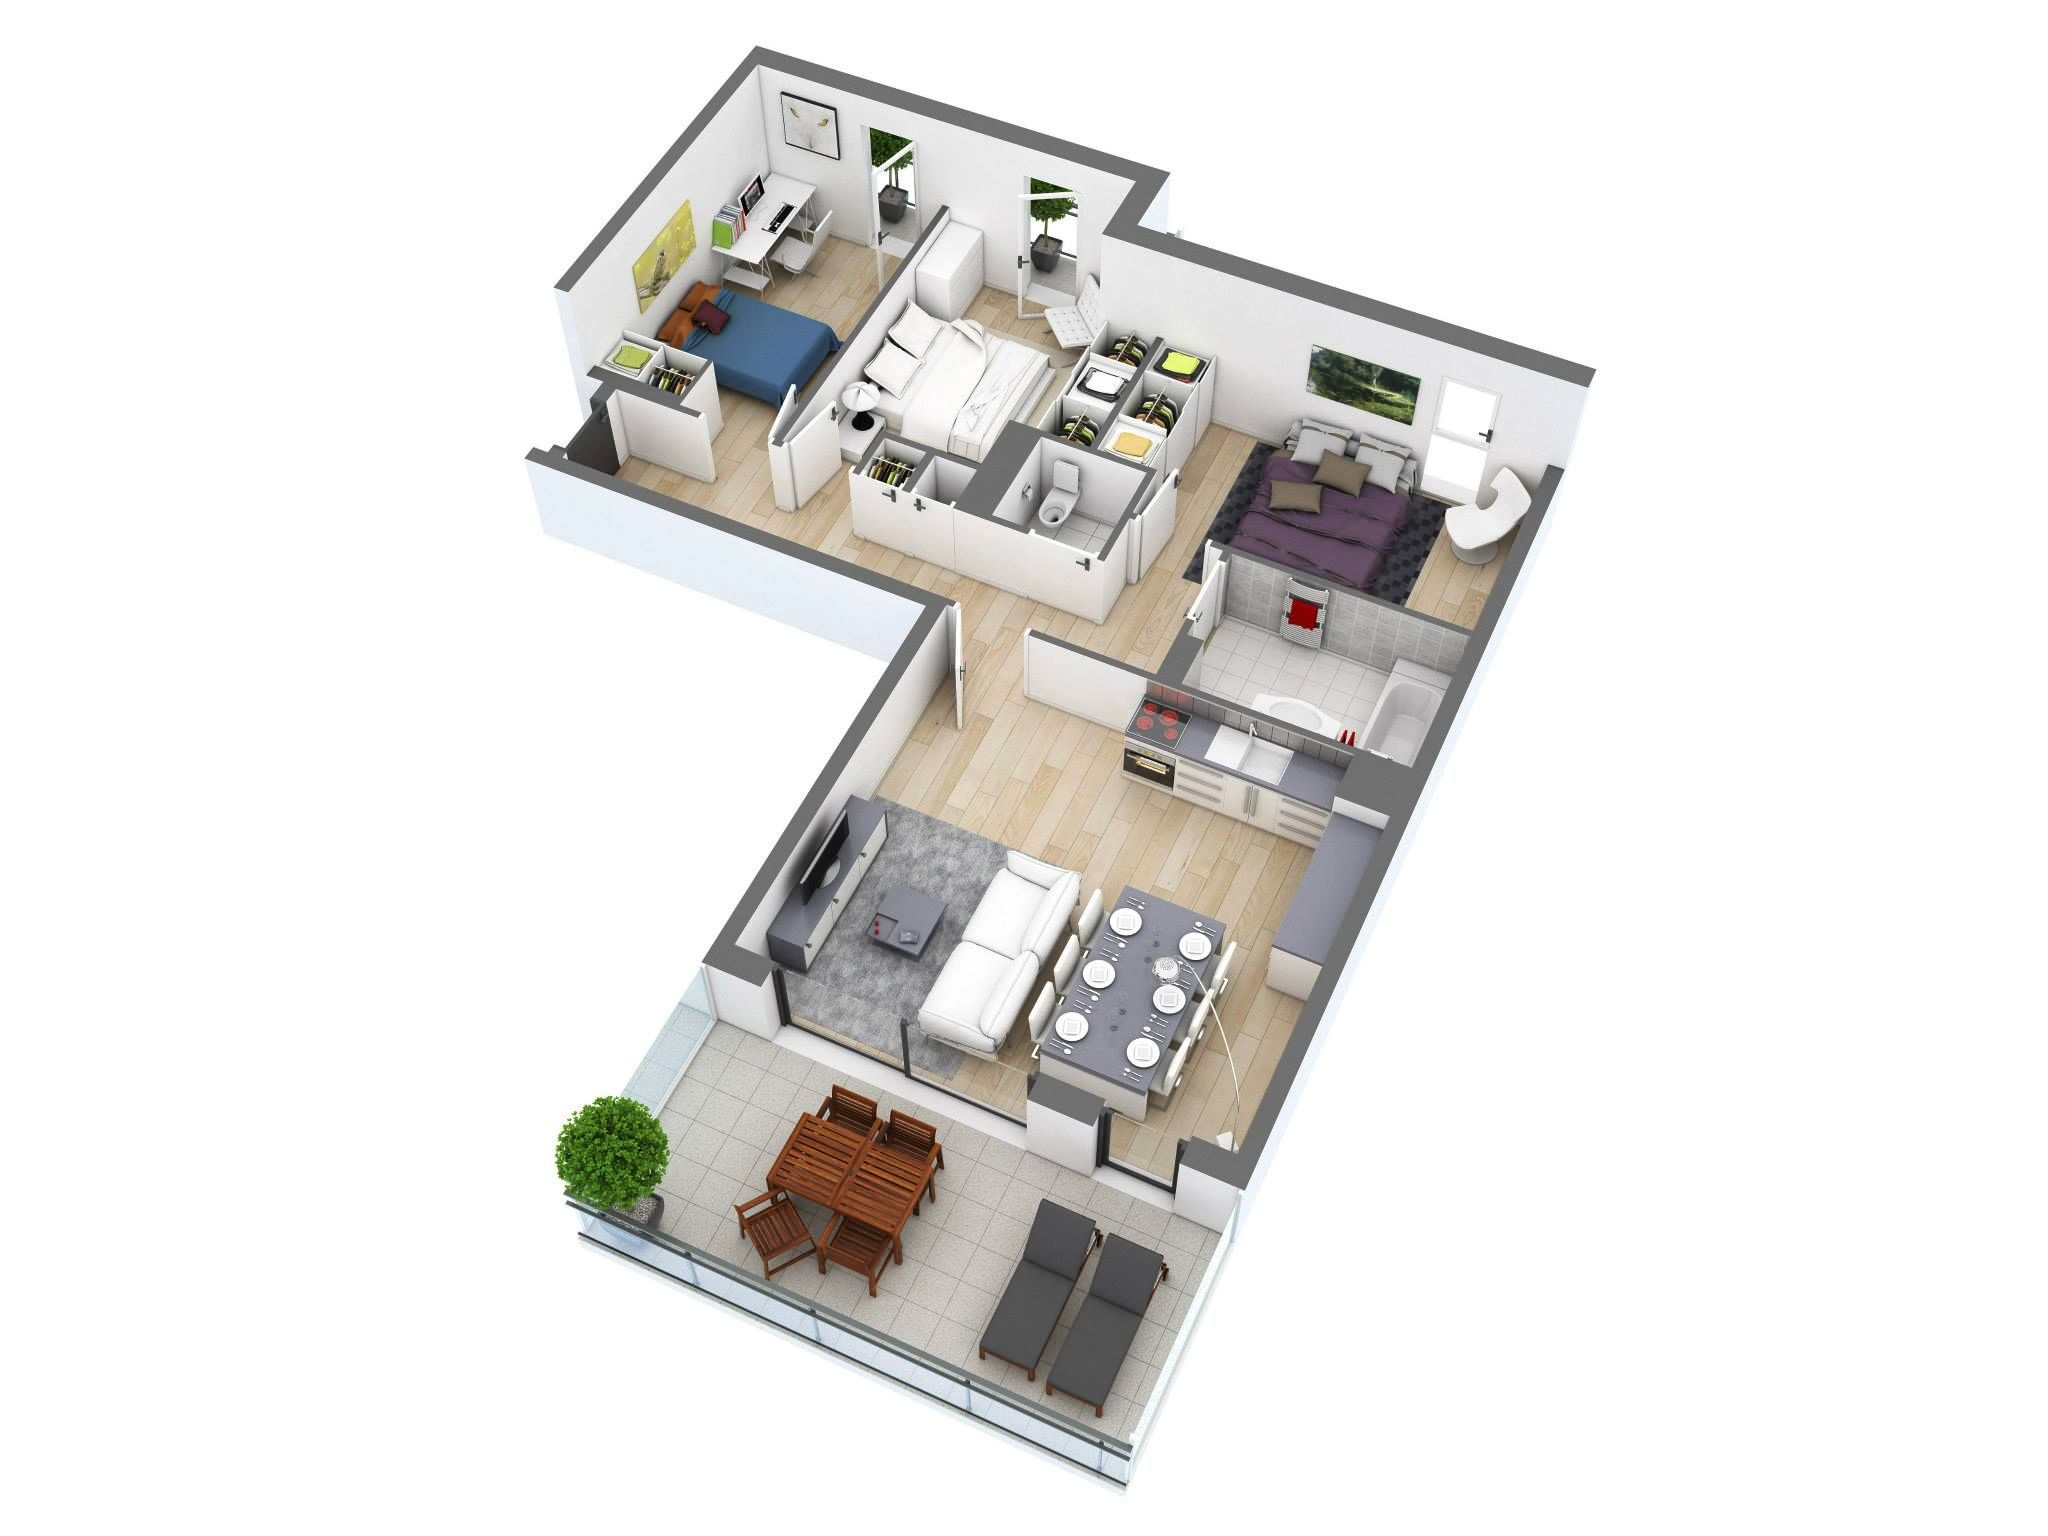 3 bedroom floor plans - 3d Design For House